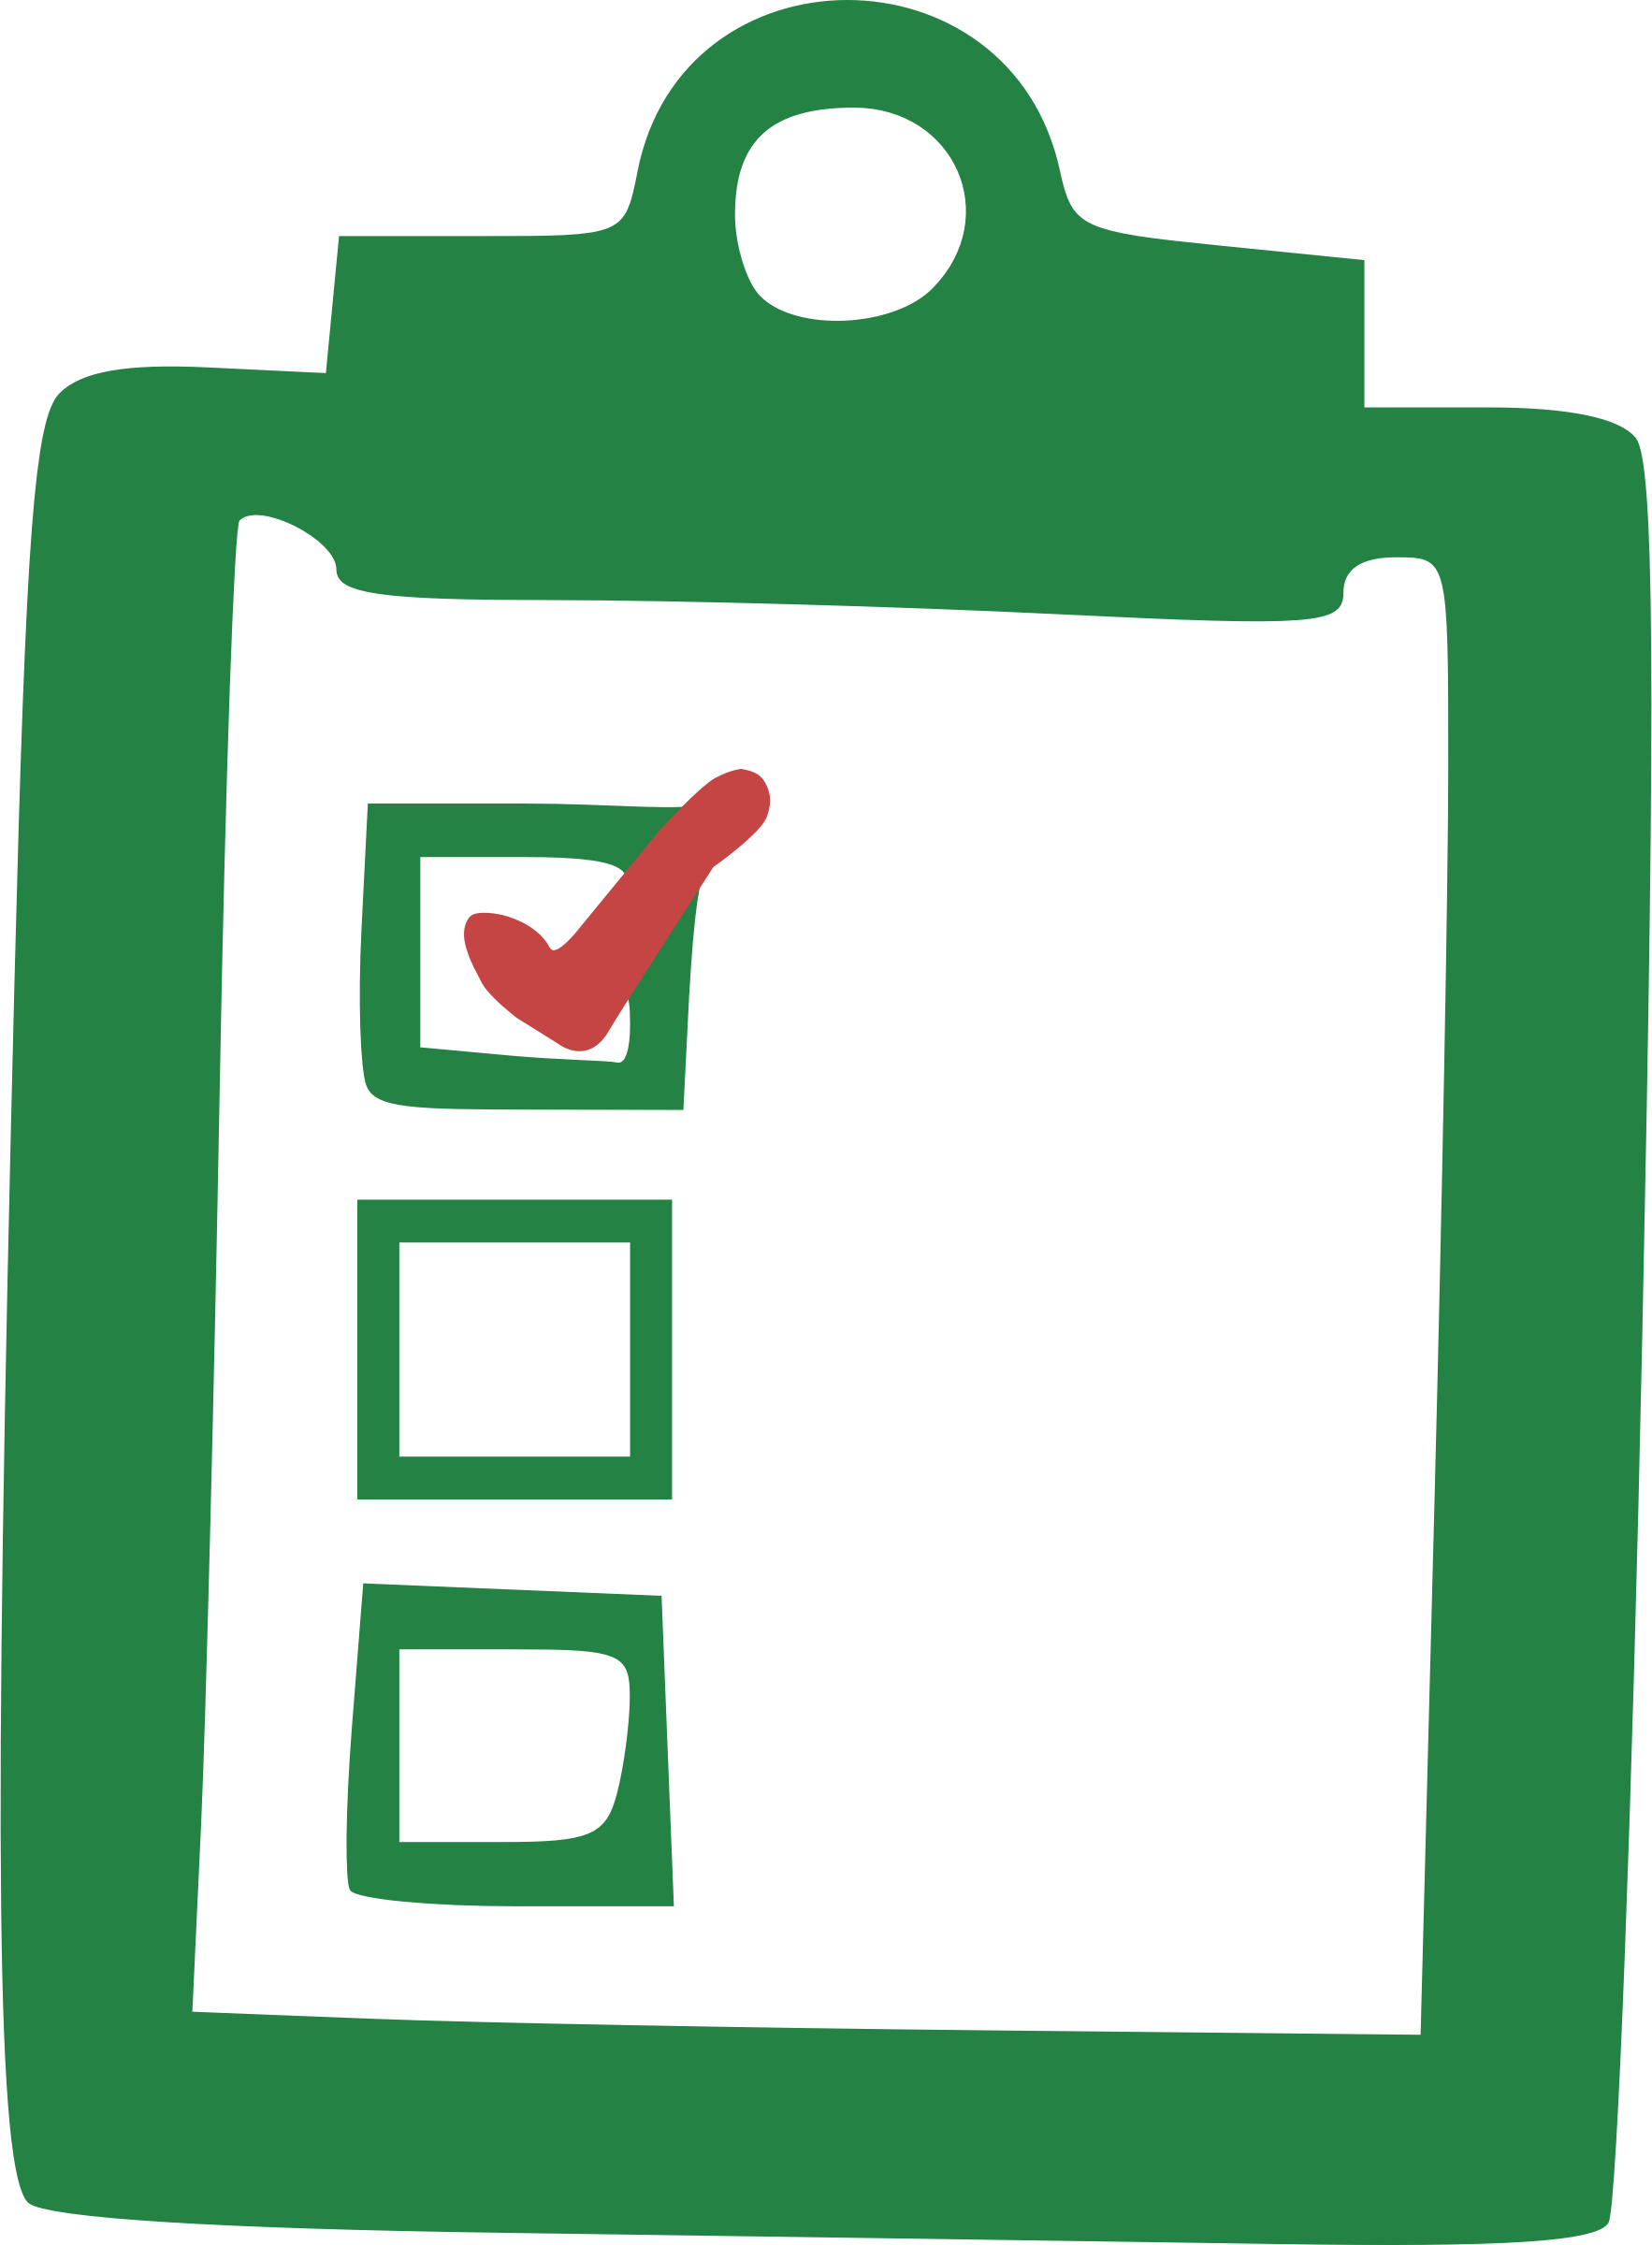 Checklist clipart png. Icons free and downloads